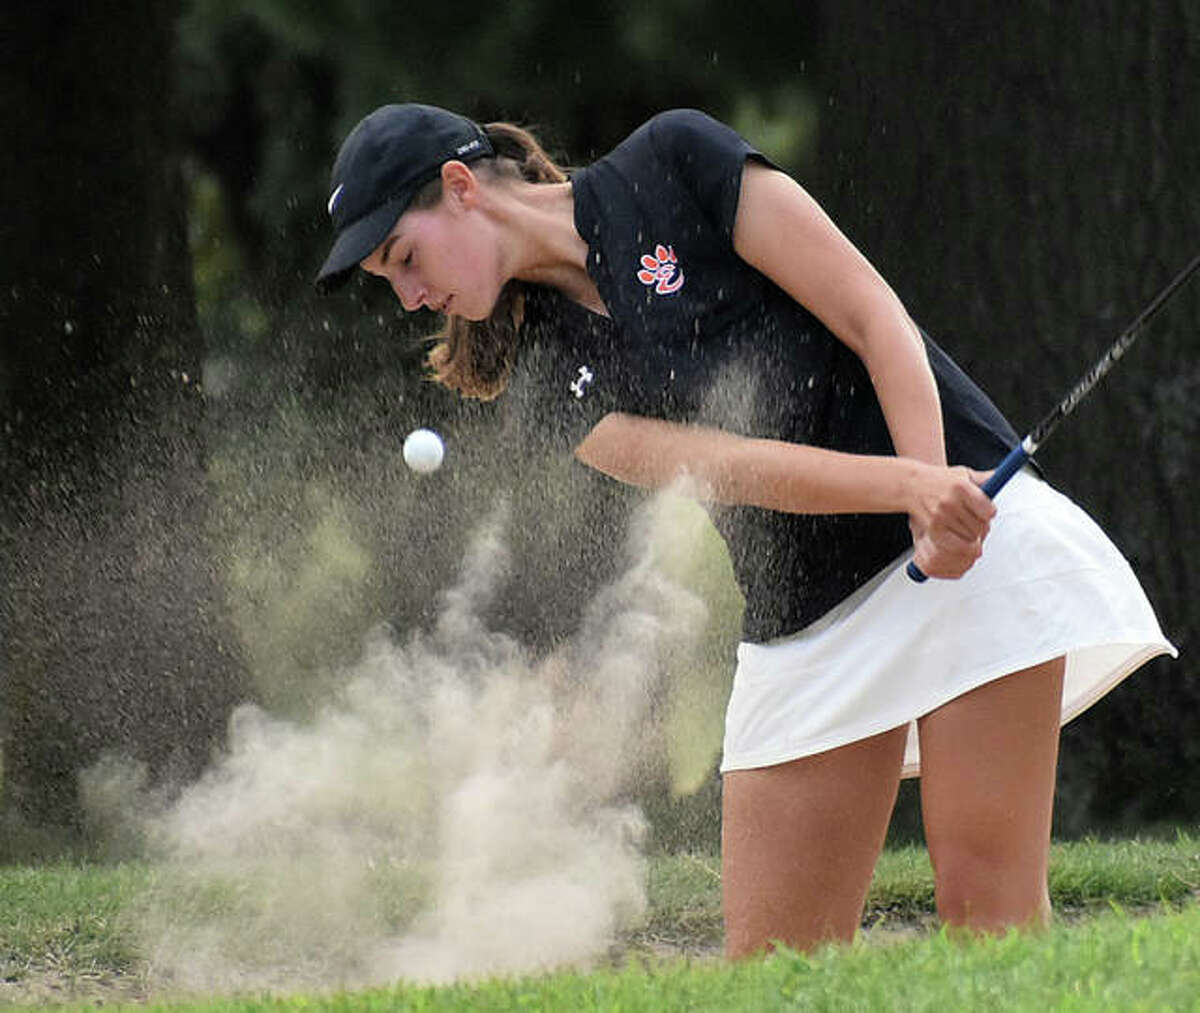 Edwardsville's Nicole Johnson hits a shot out of the bunker earlier in the regular season. EHS will hit the road Tuesday for Marion to play a practice round at Kokopelli Golf Club, which features 96 bunkers on the 18-hole course, before the regional on Wednesday.